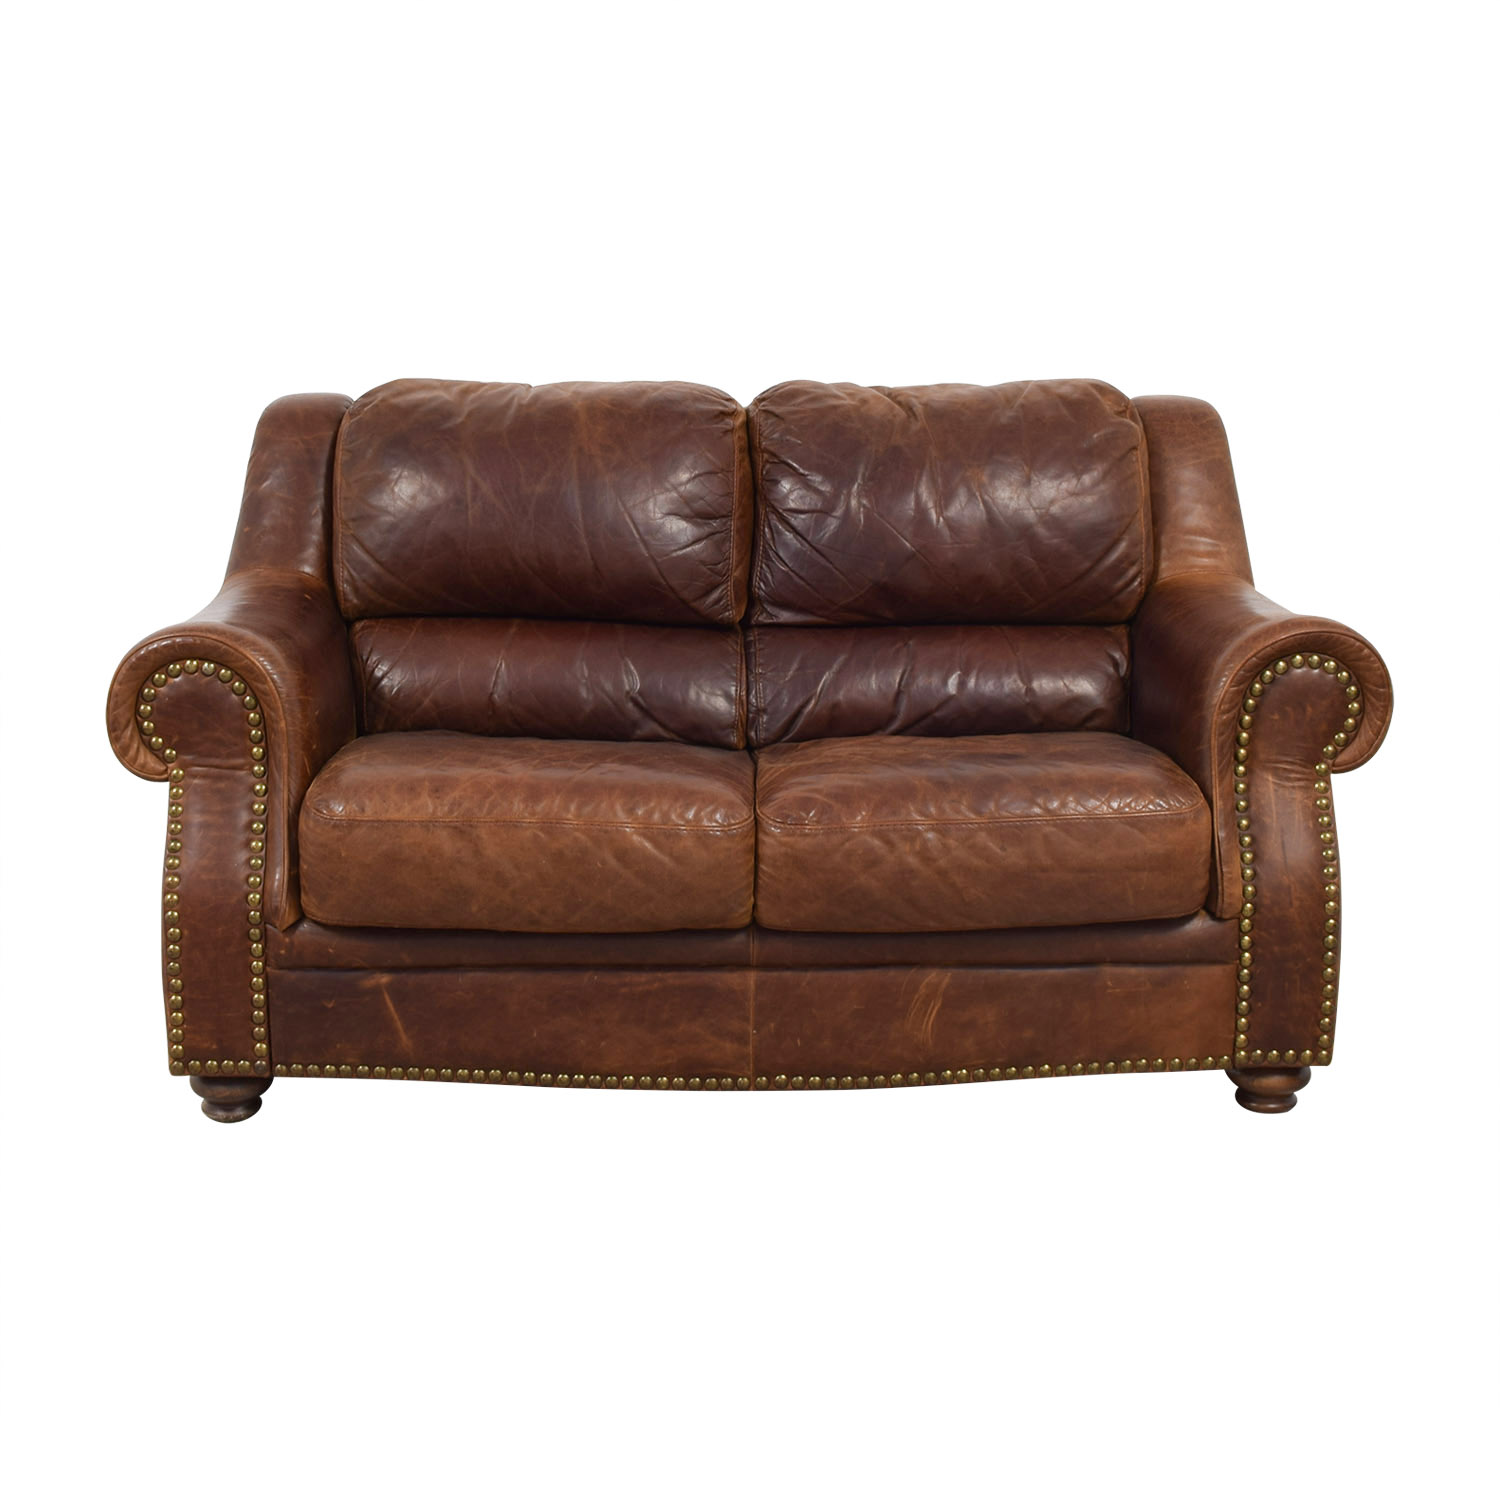 Brown Leather Nailhead Two-Cushion Loveseat